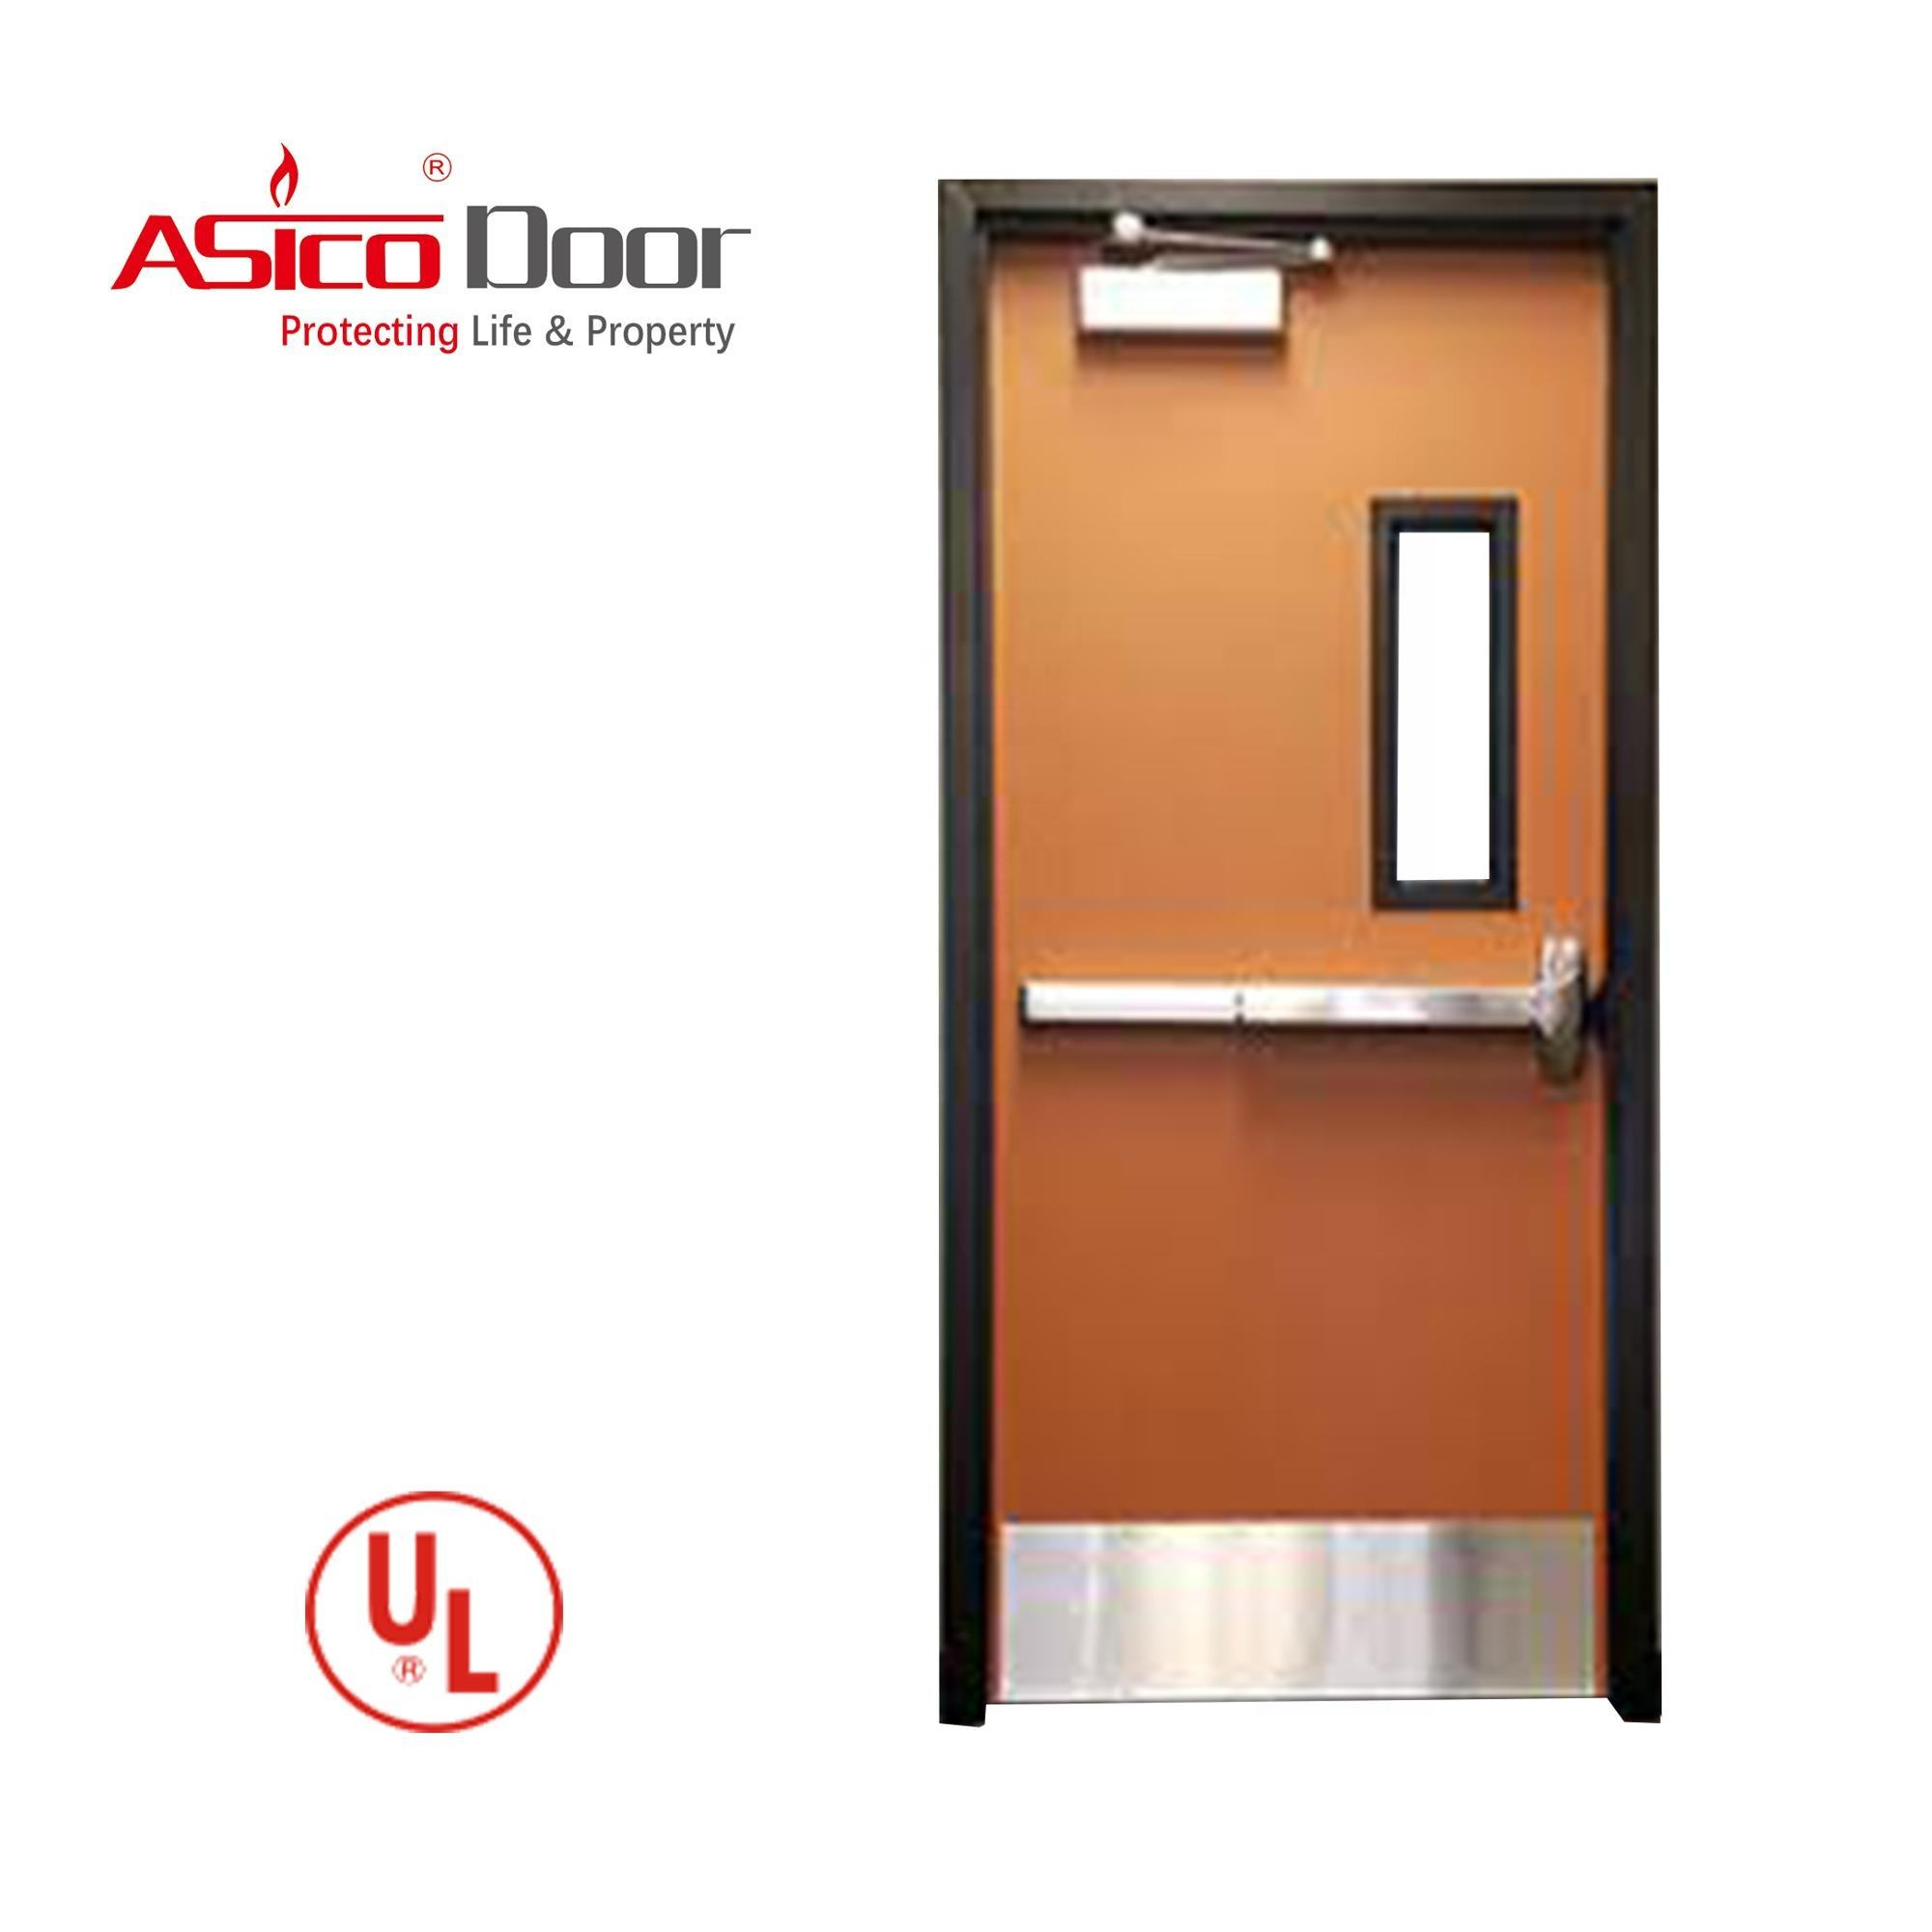 American Standard Size UL Listed Fire Rated Steel Hollow Metal Commercial Door With Panic Push Bar And Glass